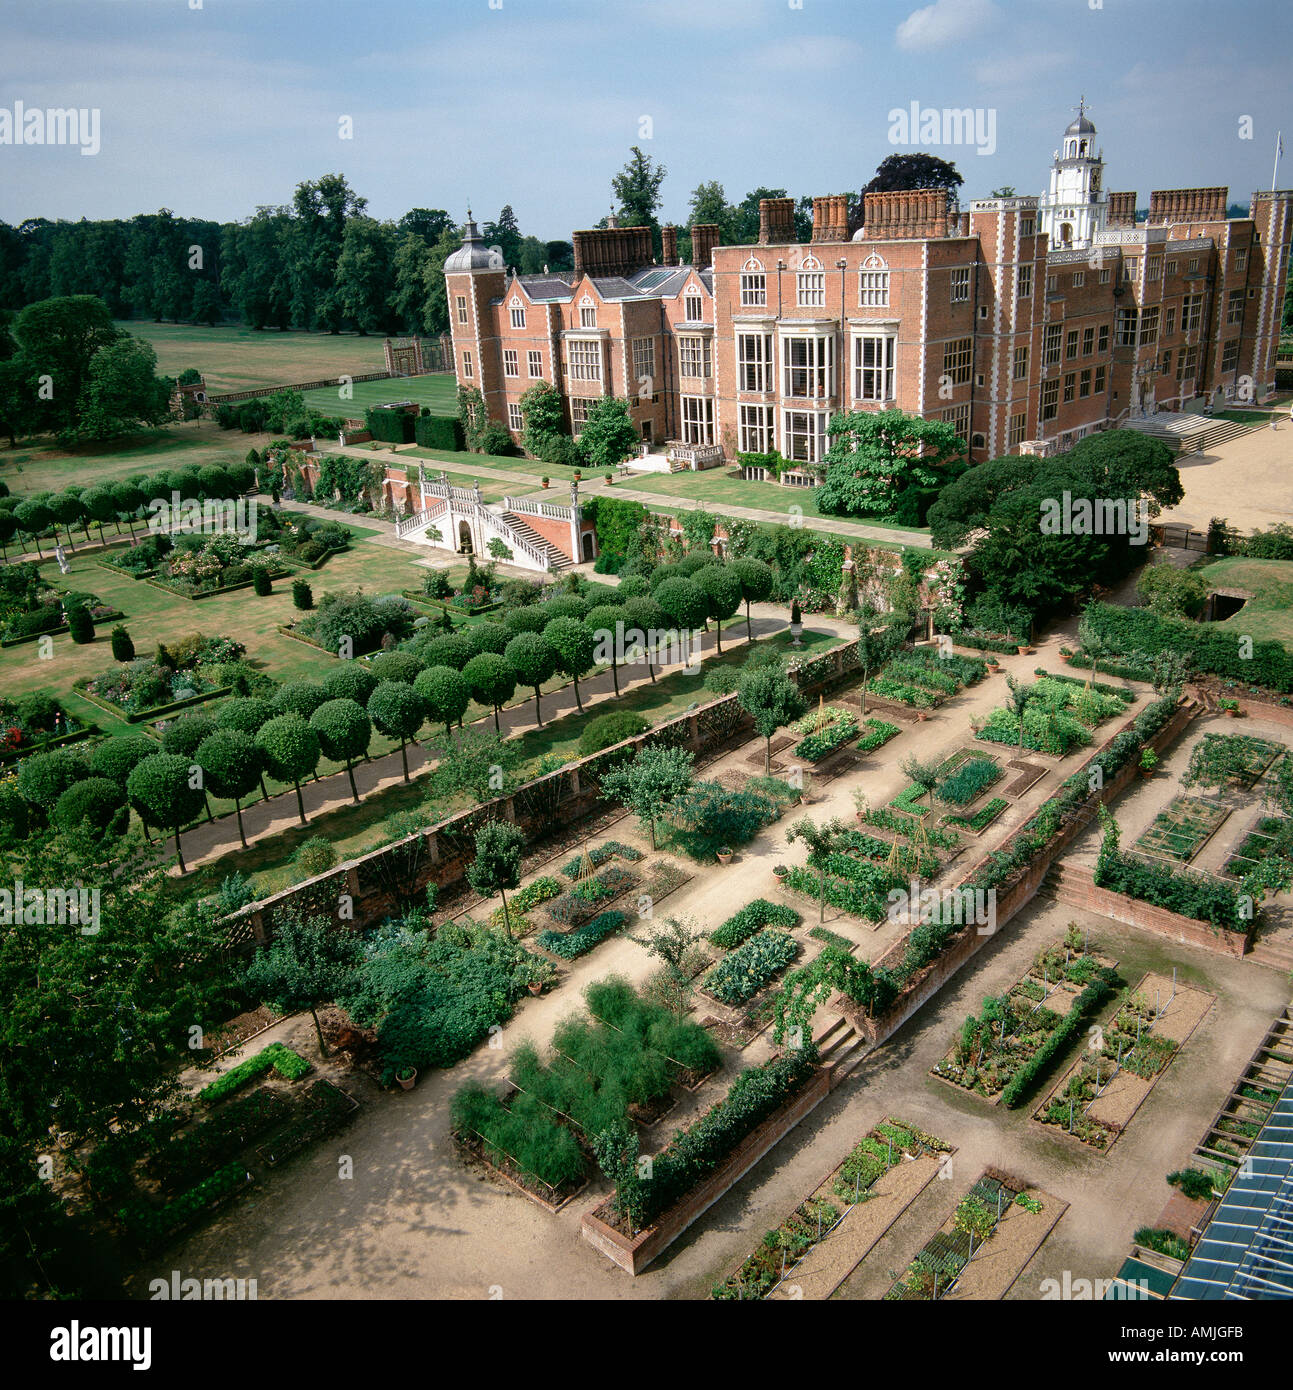 aerial view english country house stockfotos aerial view english country house bilder alamy. Black Bedroom Furniture Sets. Home Design Ideas